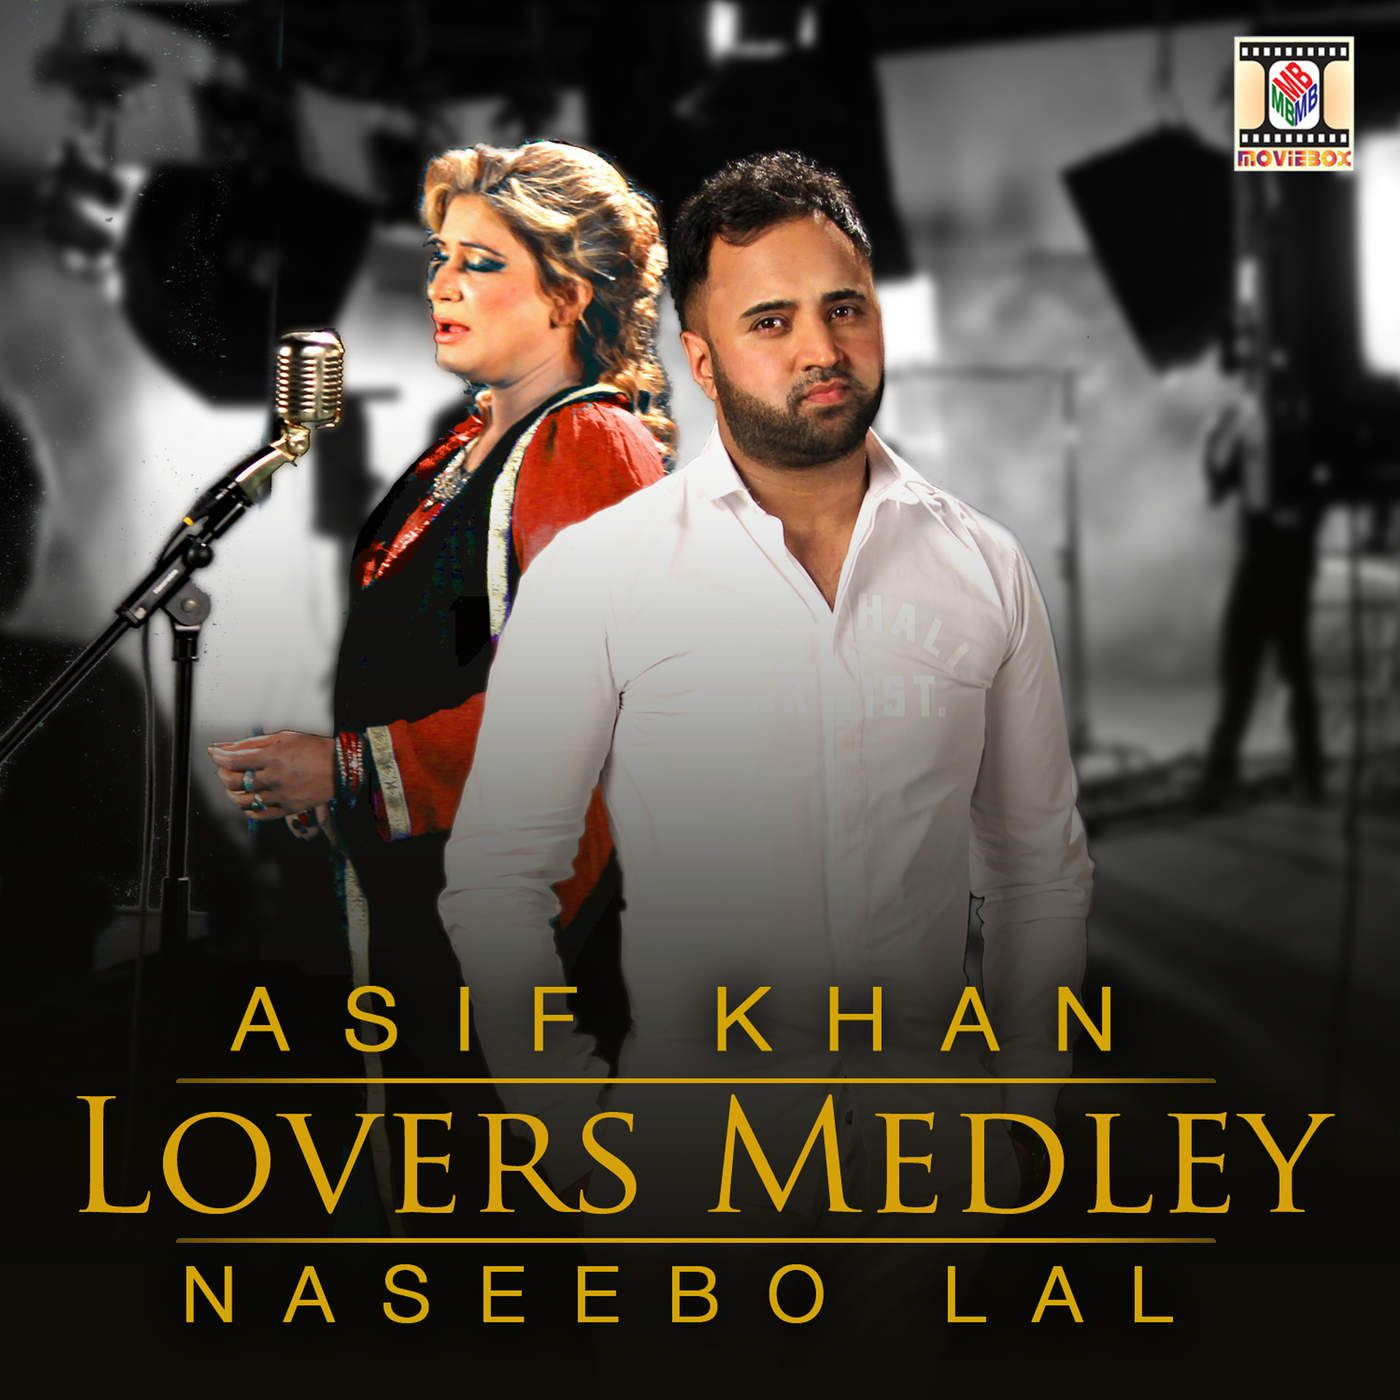 Free Download Lovers Medley Naseebo Lal Mp3 Songs Lovers Medley Full Albums Dj Single Track Lovers Medley Music Naseebo Lal Collec Songs Songs 2017 Mp3 Song